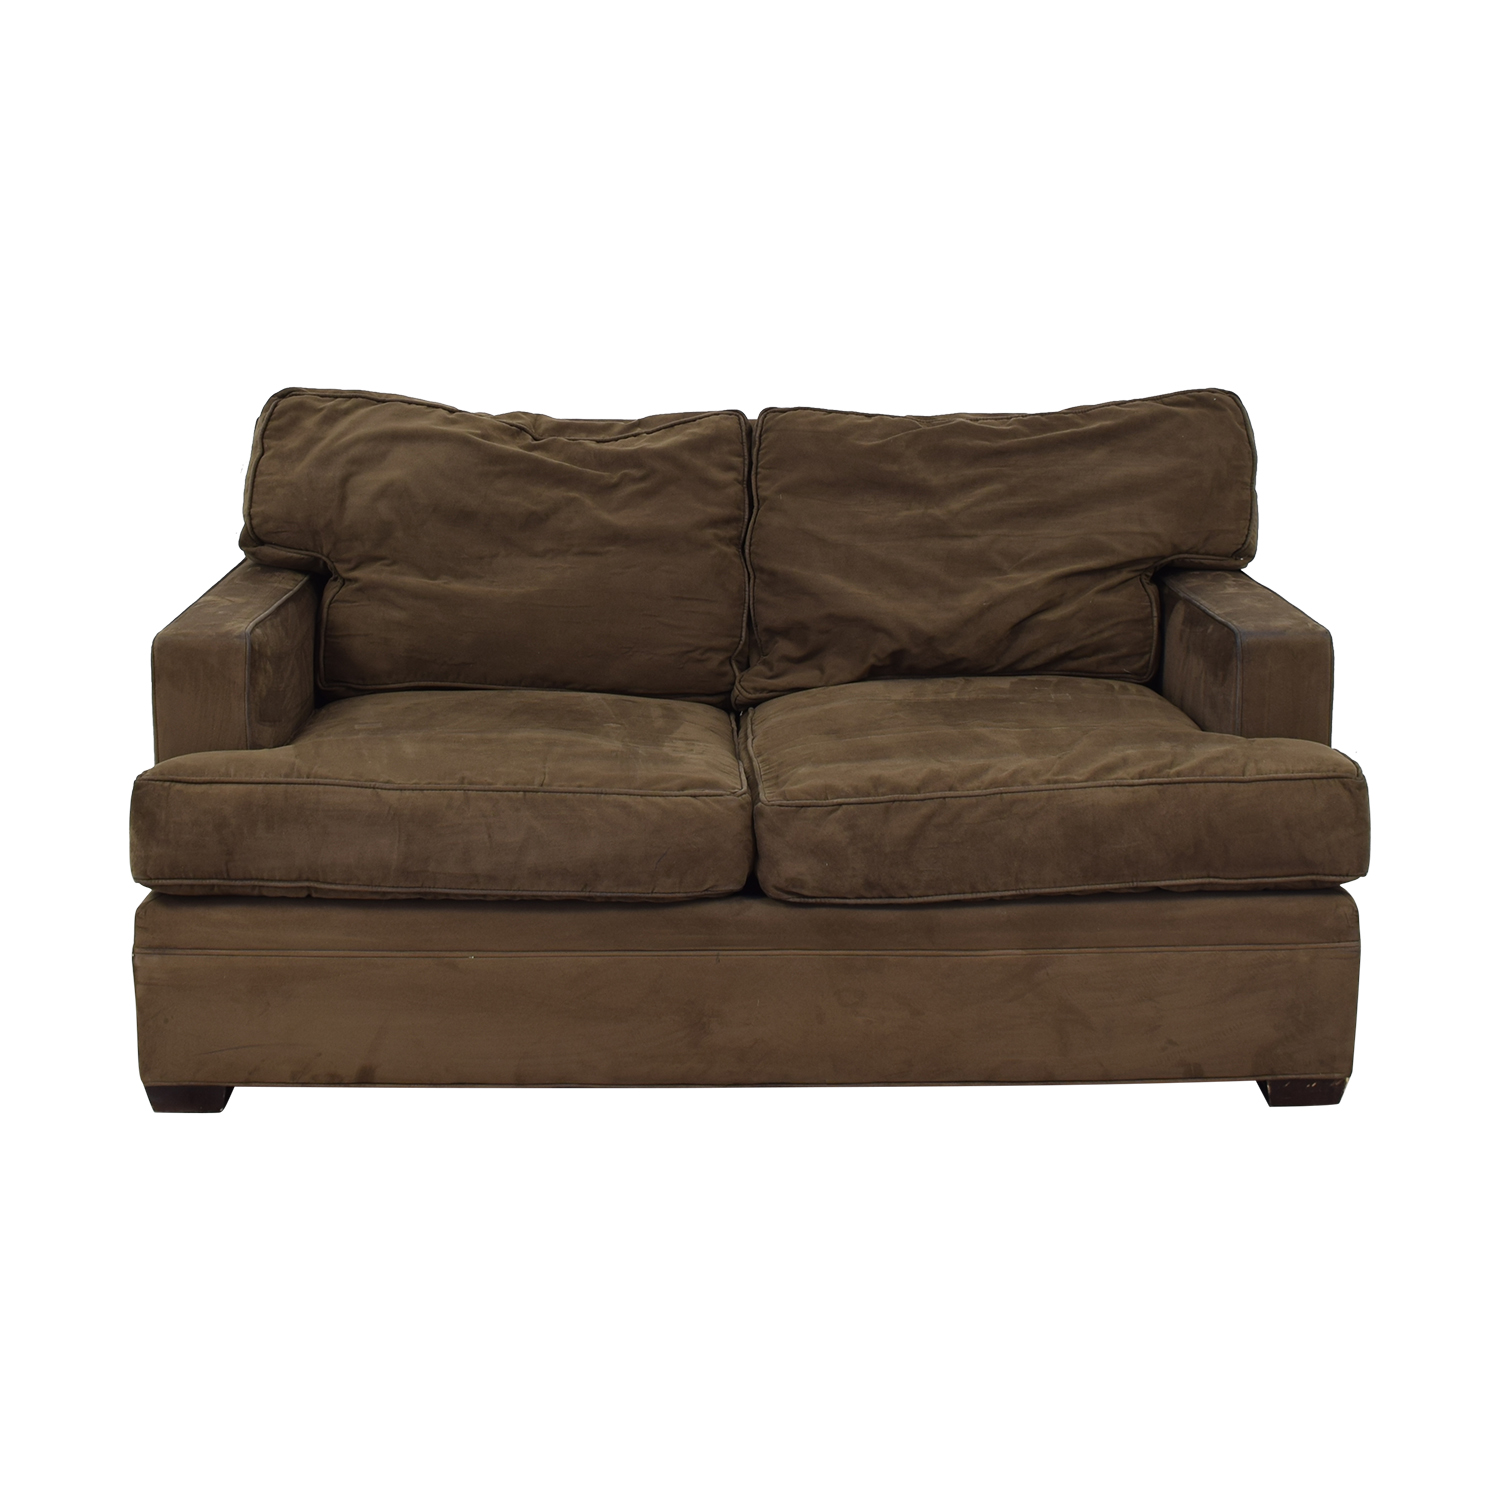 Crate & Barrel Crate & Barrel Brown Suede Loveseat for sale